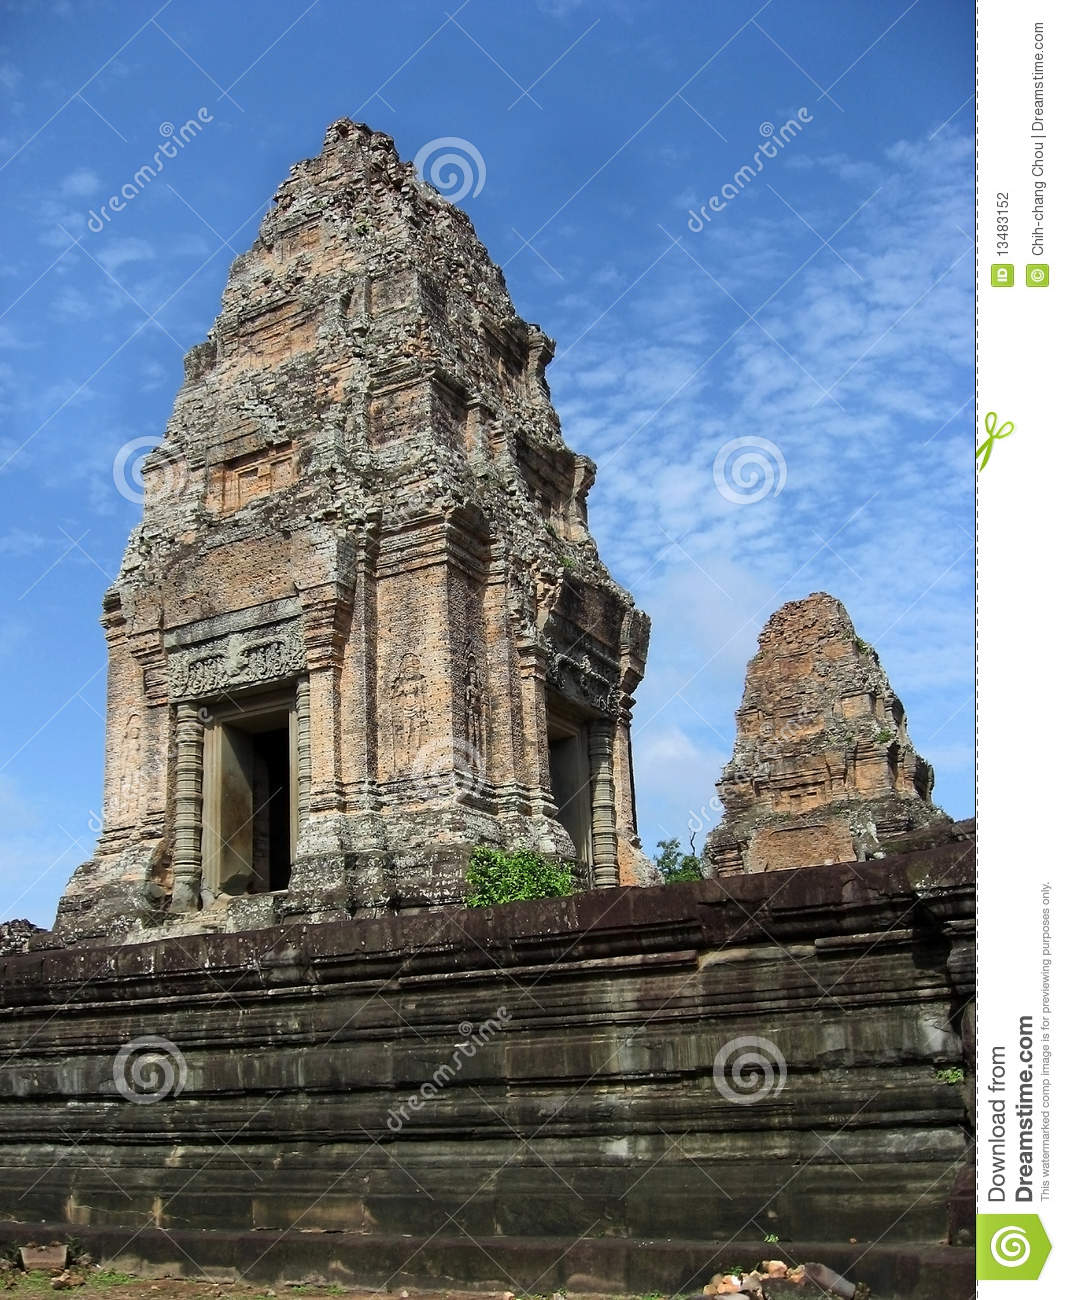 Angkor wat architecture stock photography image 13483152 for Wat architecture